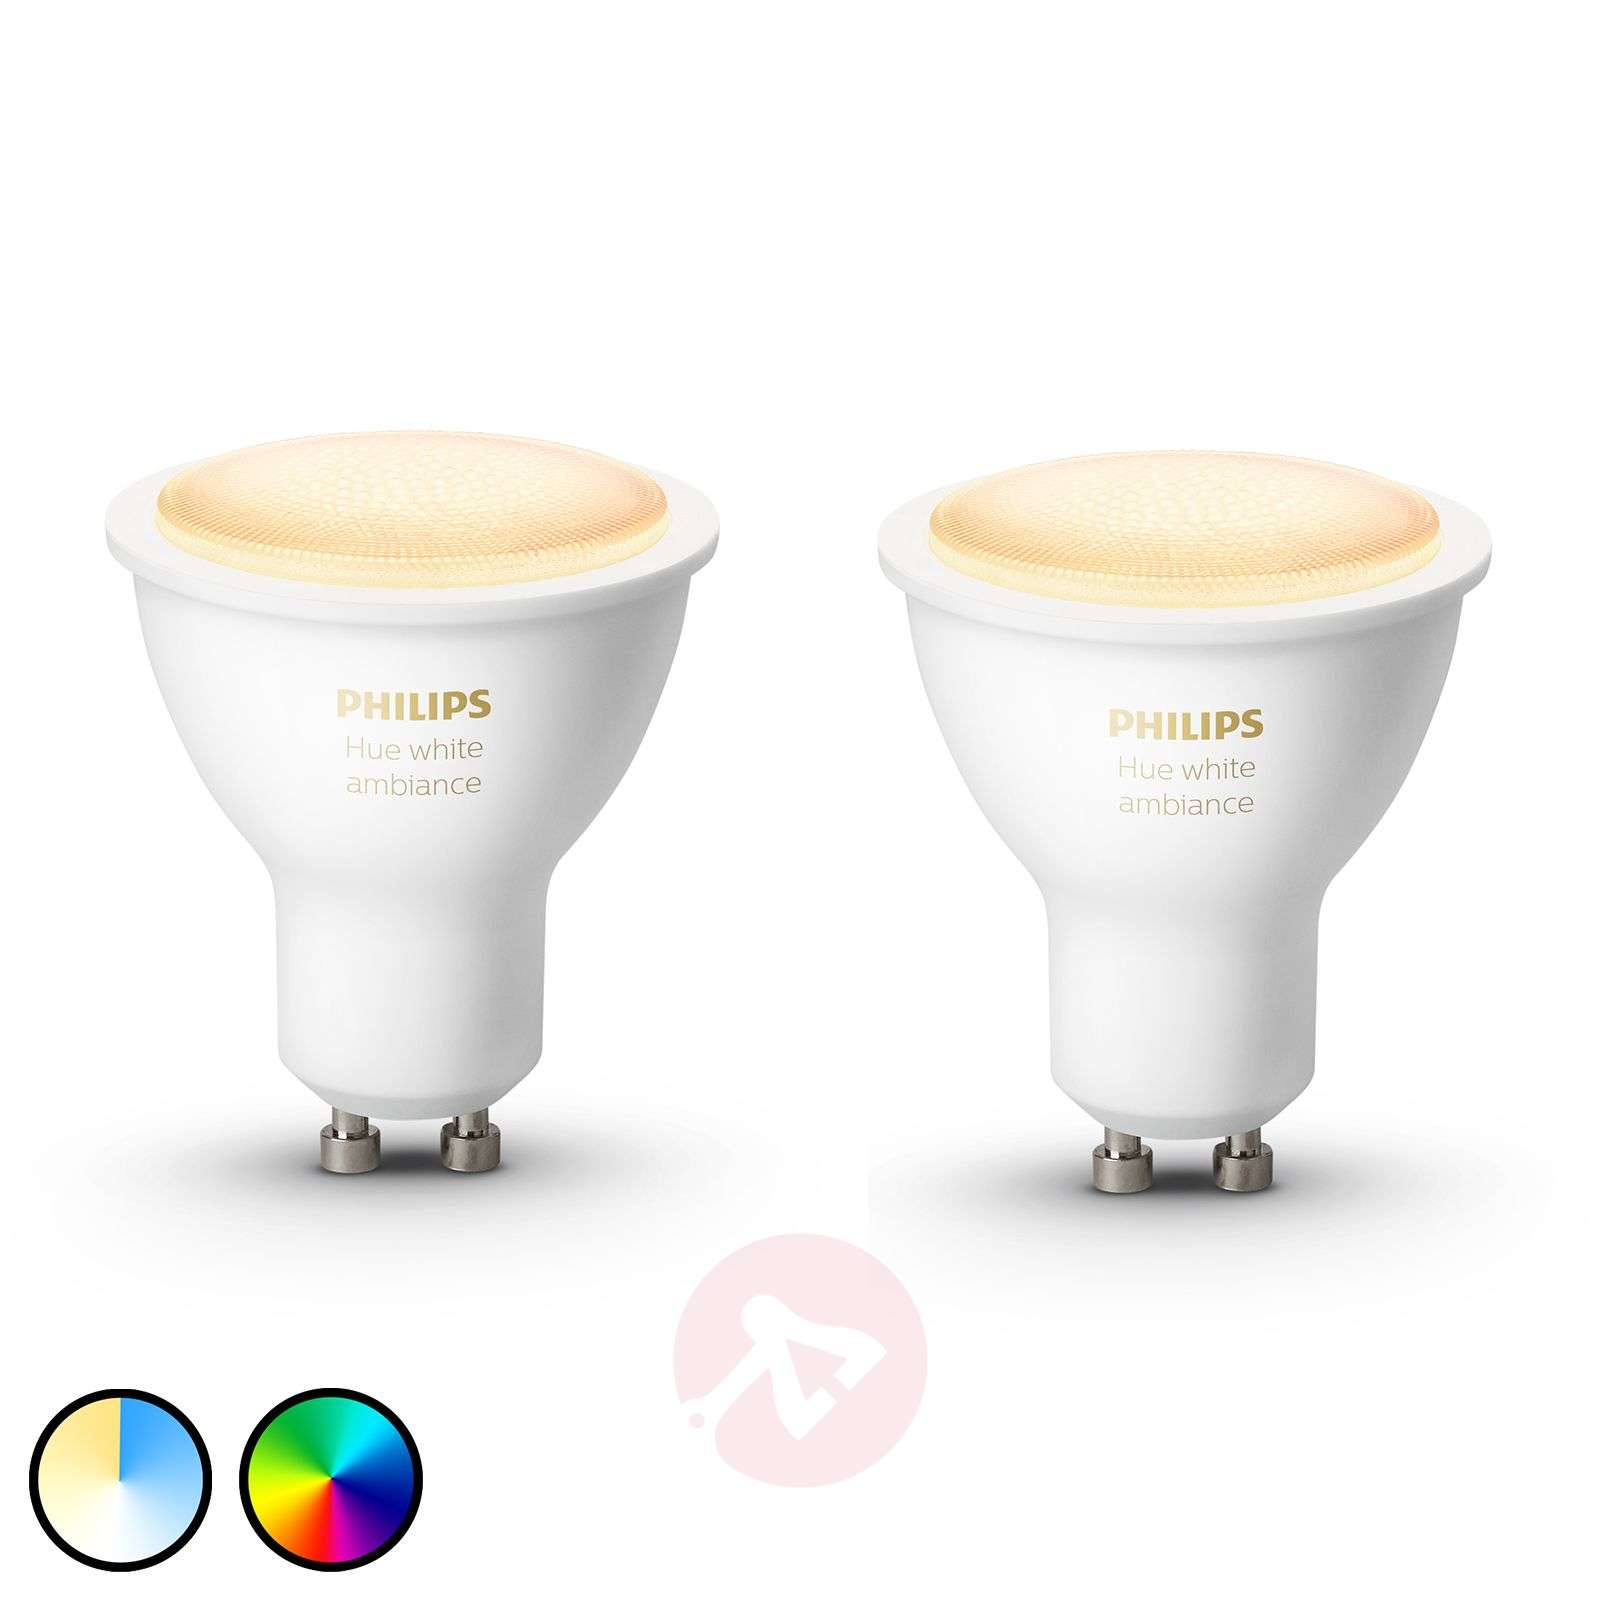 Philips Hue White Ambiance 5 W GU10 LED, set de 2-7534132-01